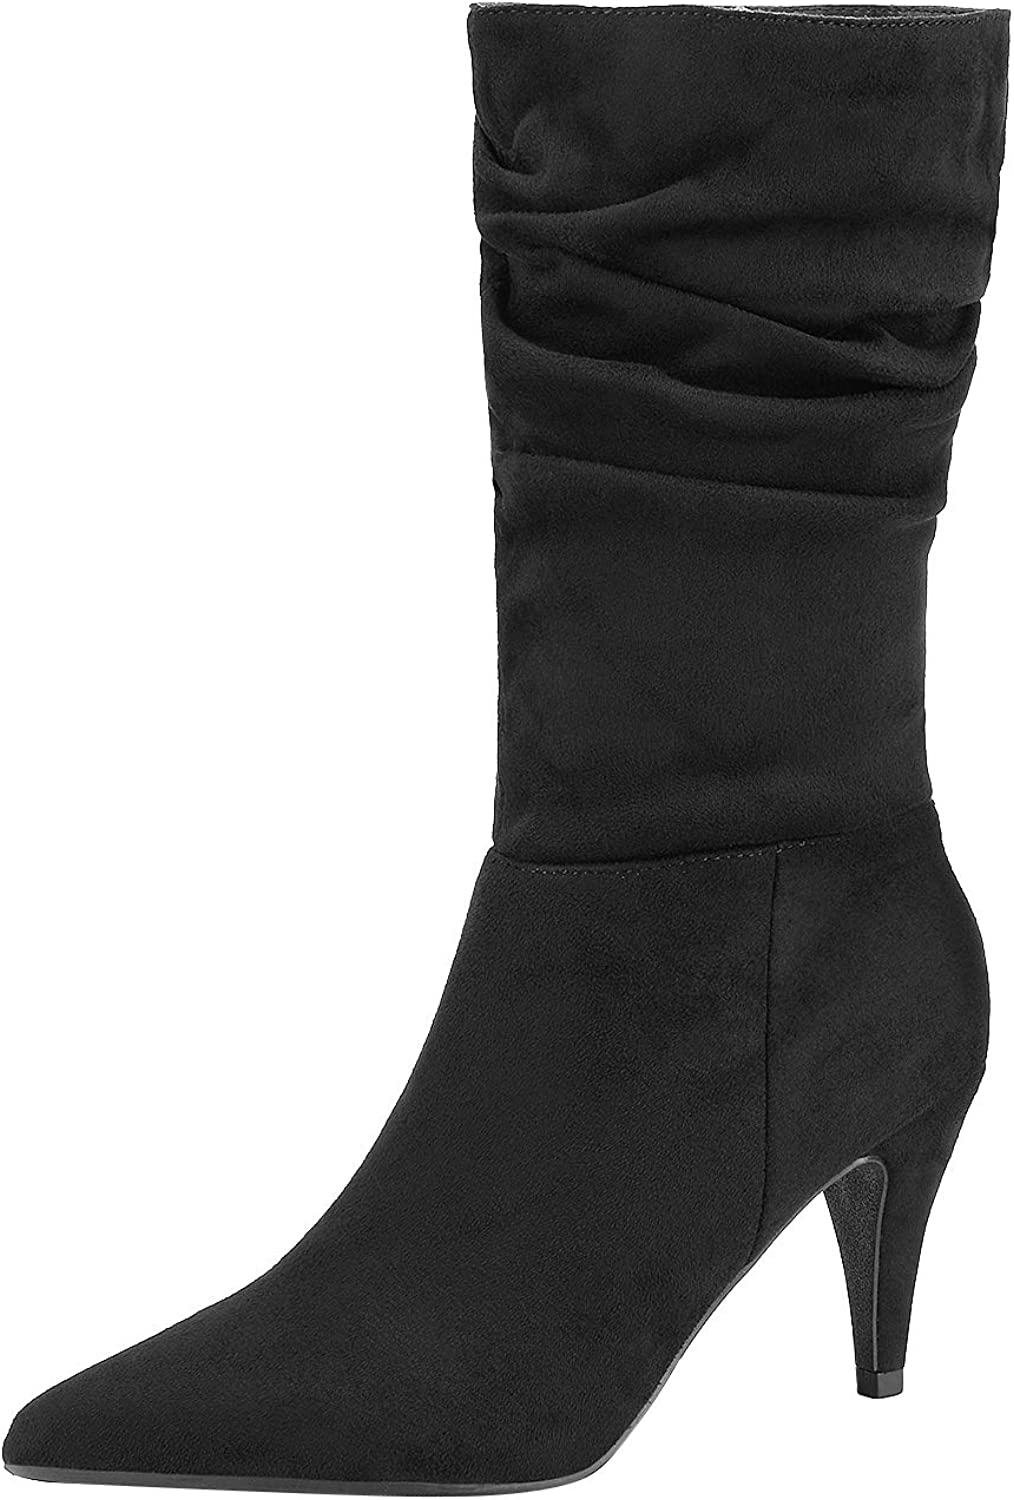 DREAM PAIRS Women Pointed Toe Mid Calf Stiletto High Heel Slouch Zipper Boots